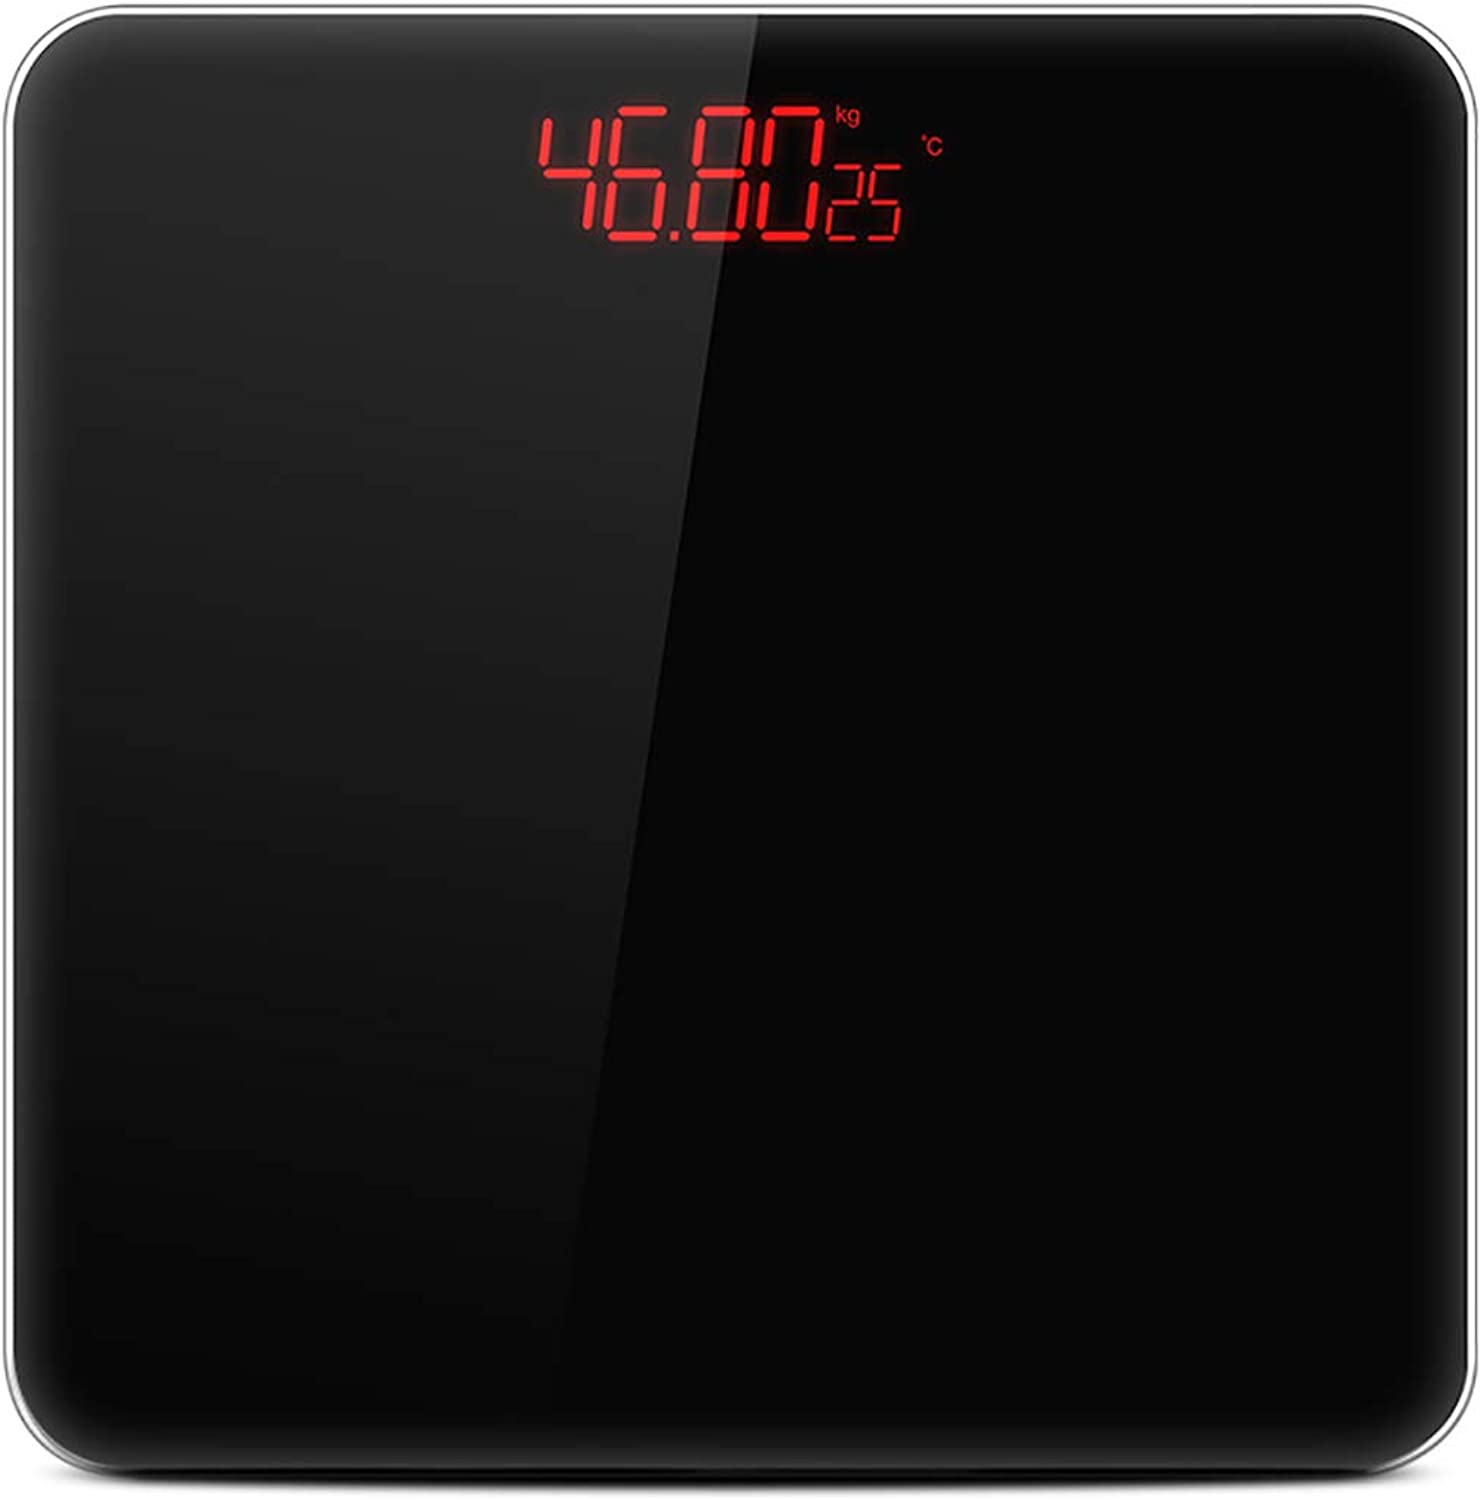 Mzqyq Weight scale household usb electronic scale sensor switch LED display (color   Black)